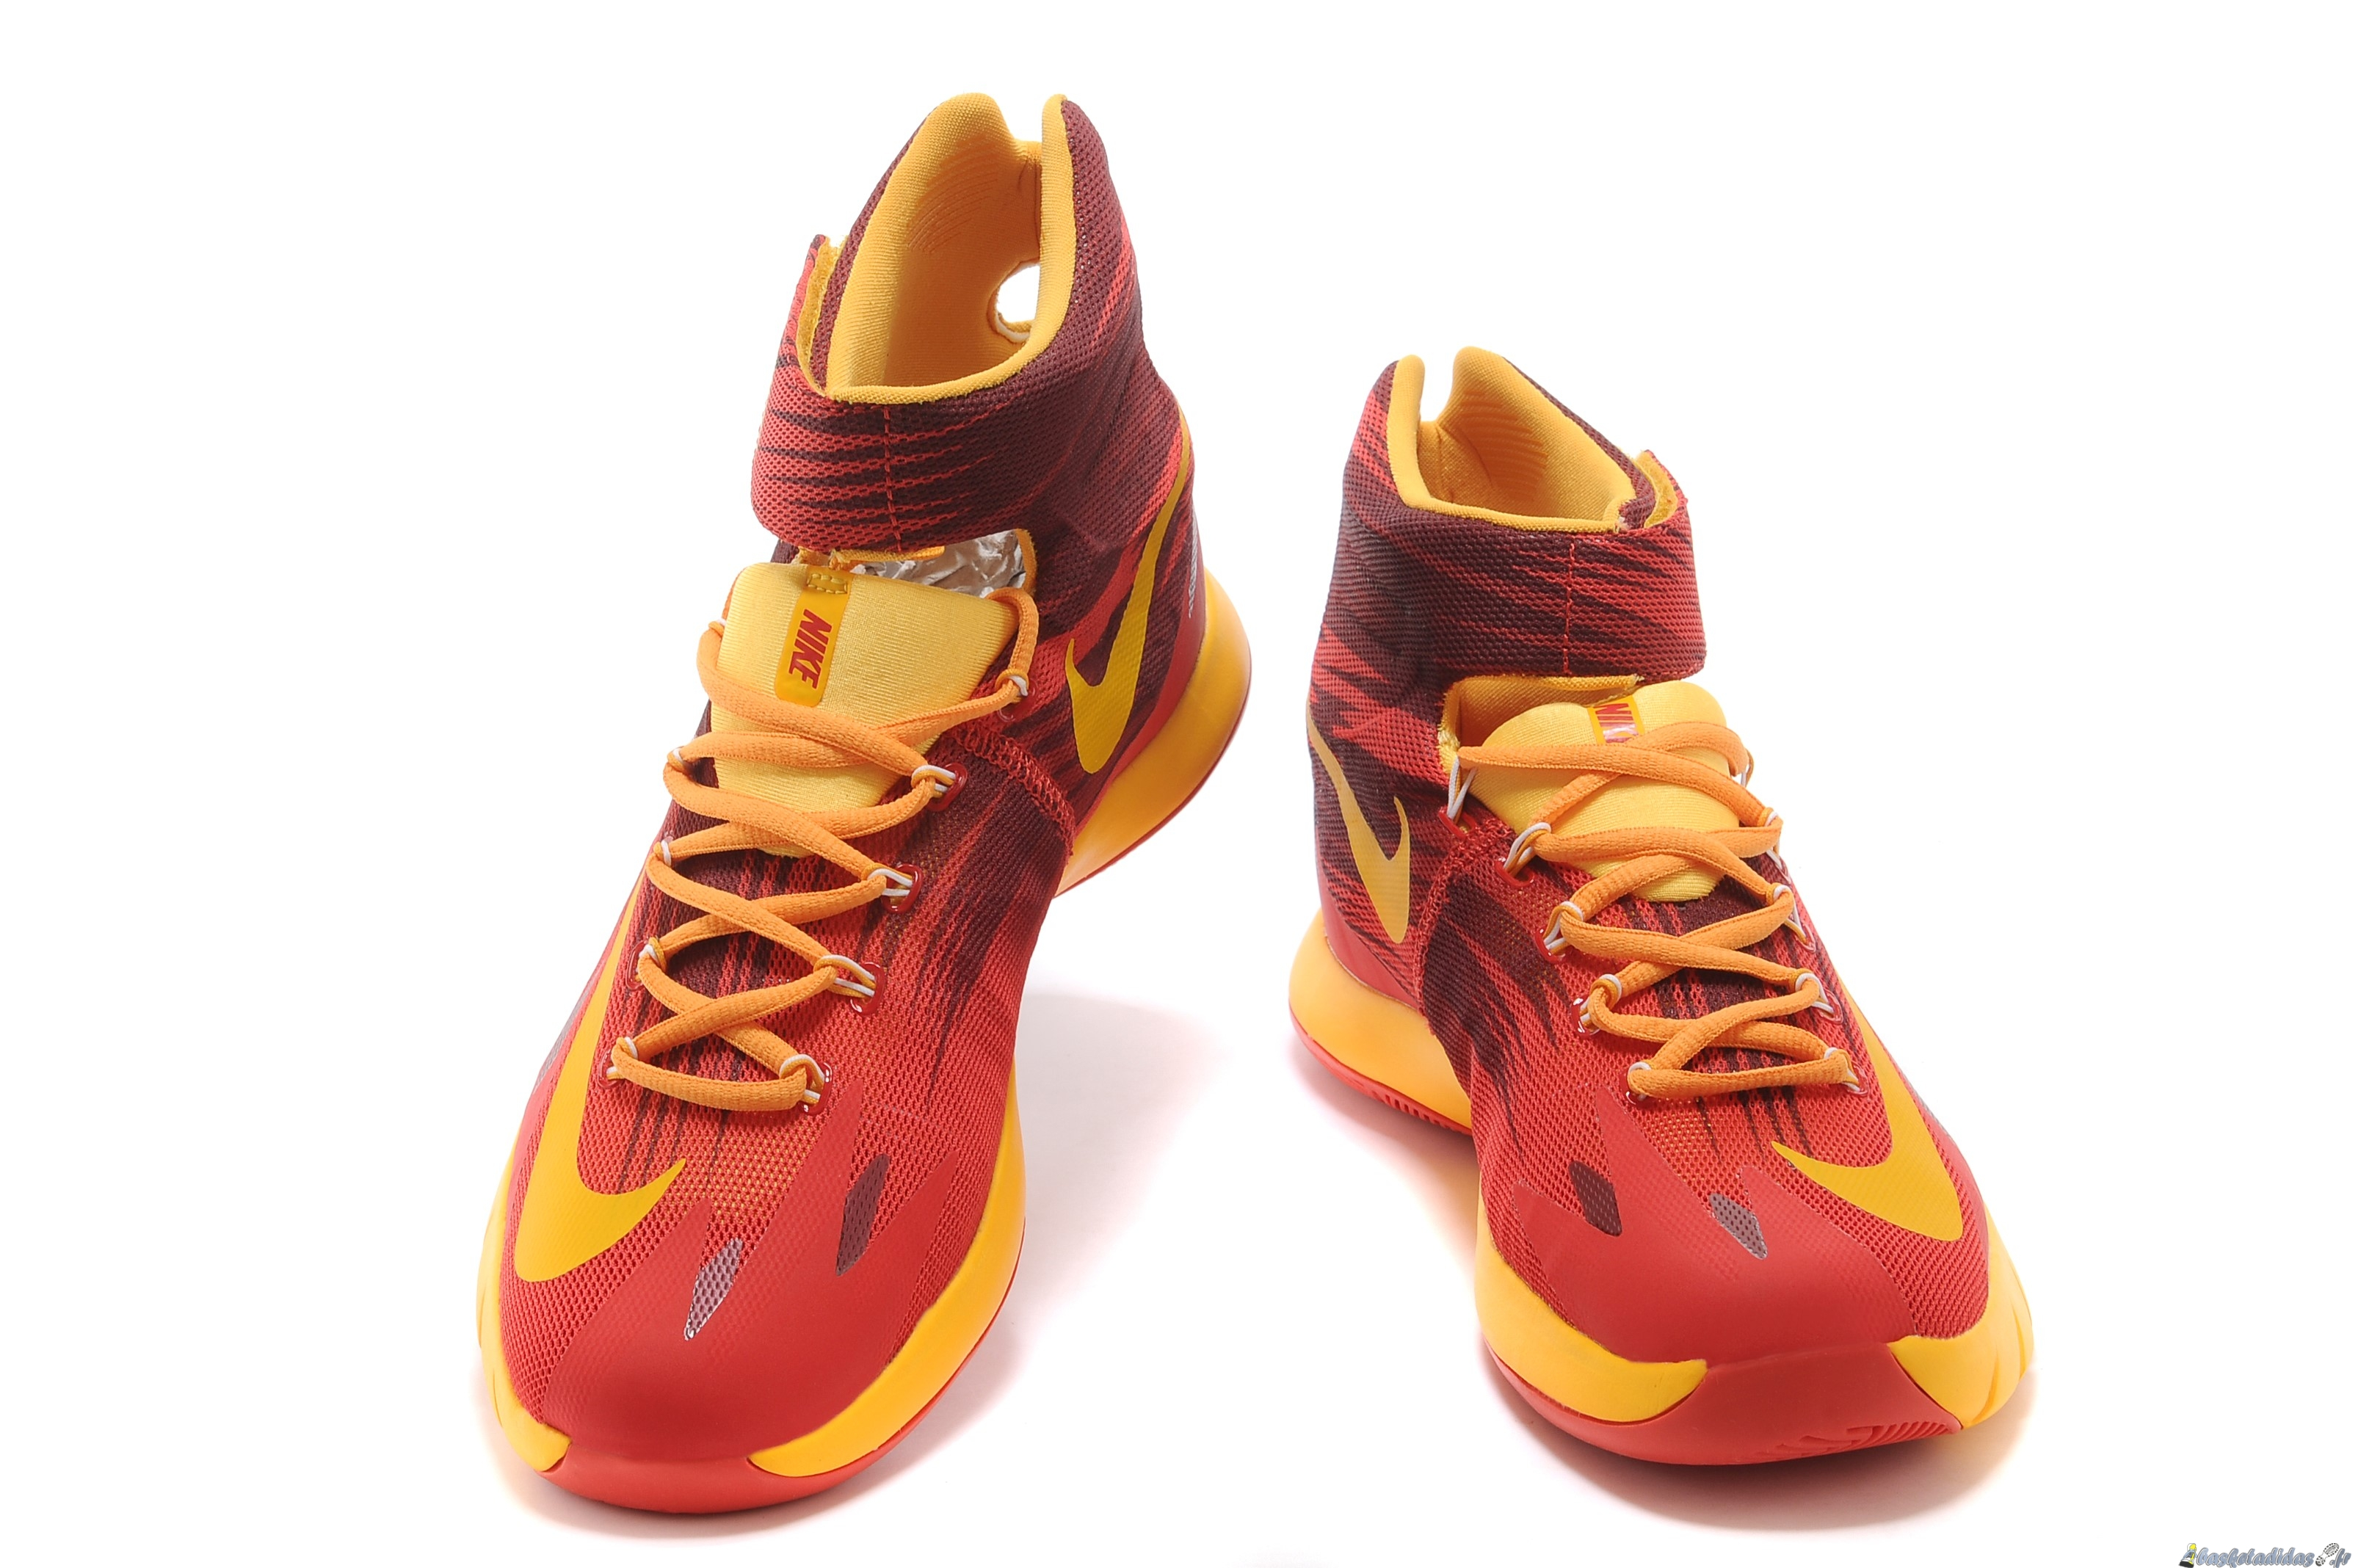 pretty nice e2127 8e1d3 Chaussure de Basket Nike Zoom Hyperrev Kyrie Irving Homme Rouge Jaune ...